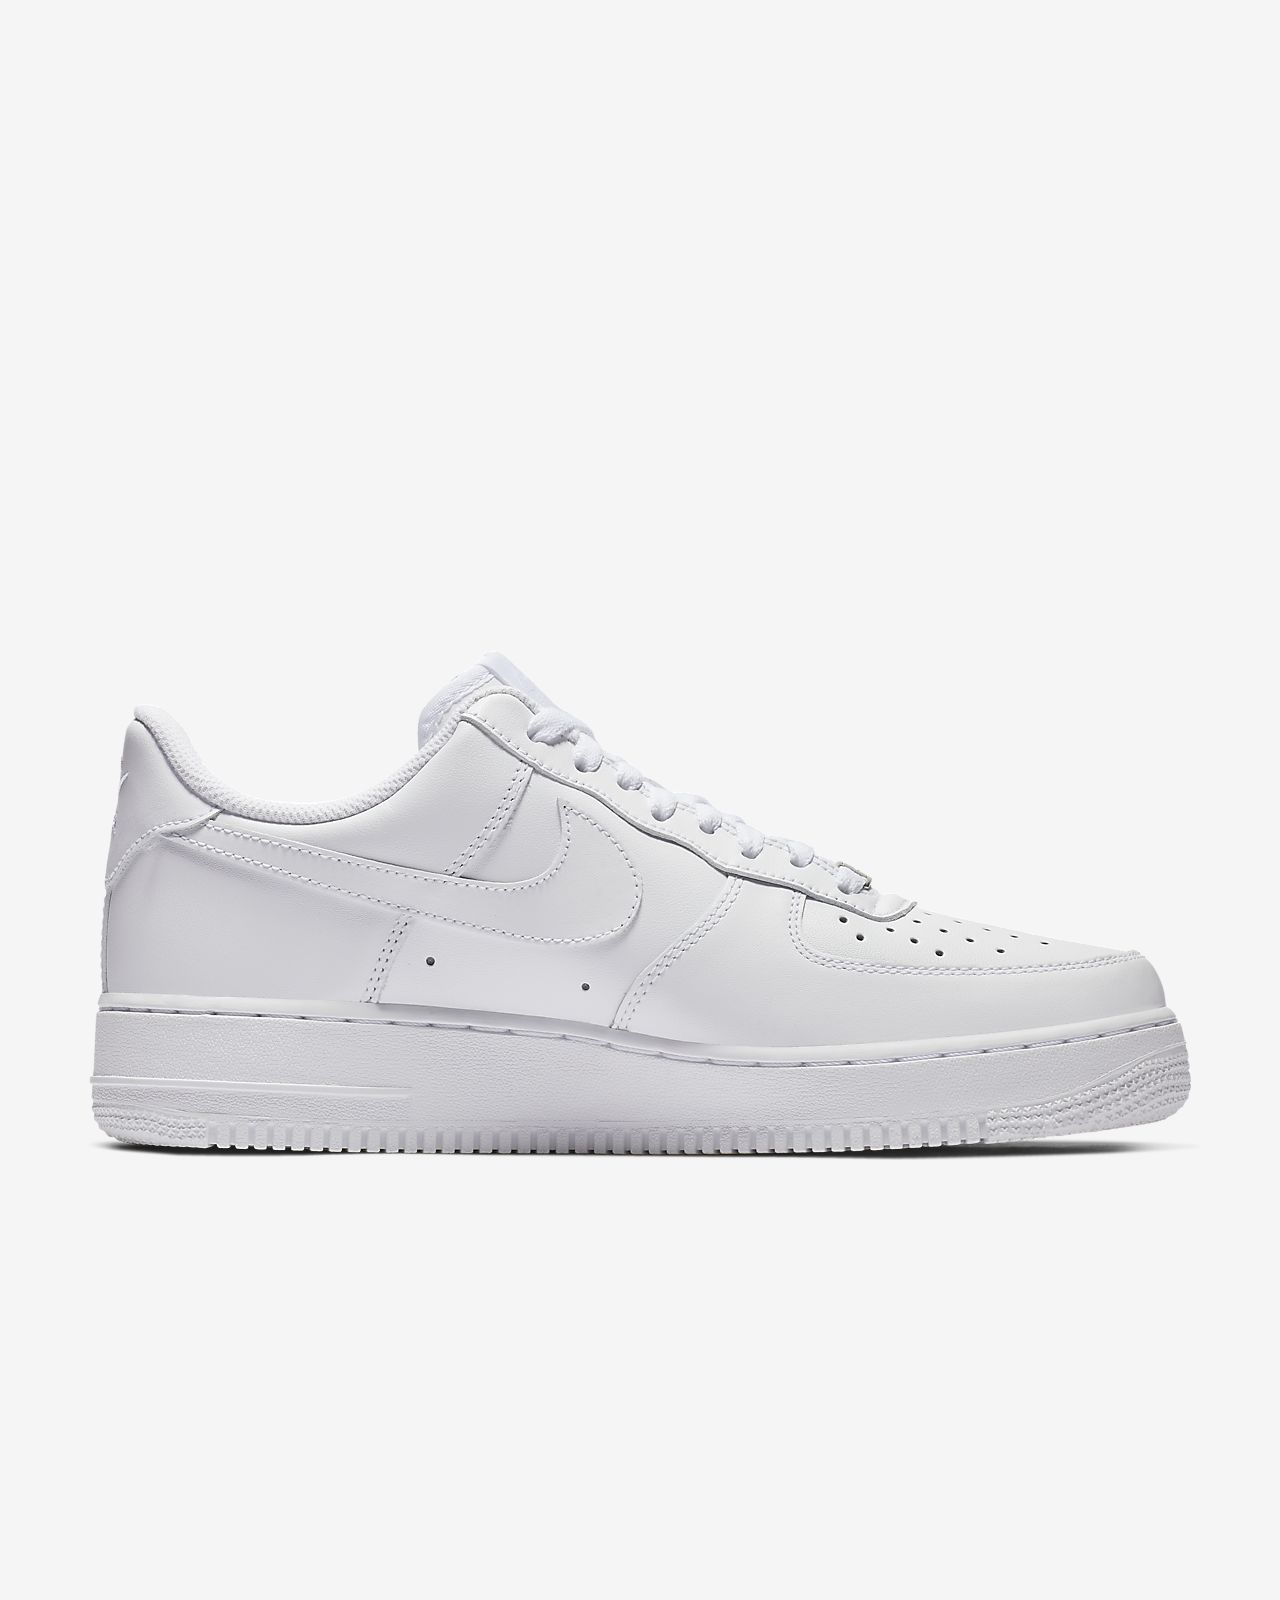 reputable site 48973 7f054 ... Nike Air Force 1  07 Damenschuh